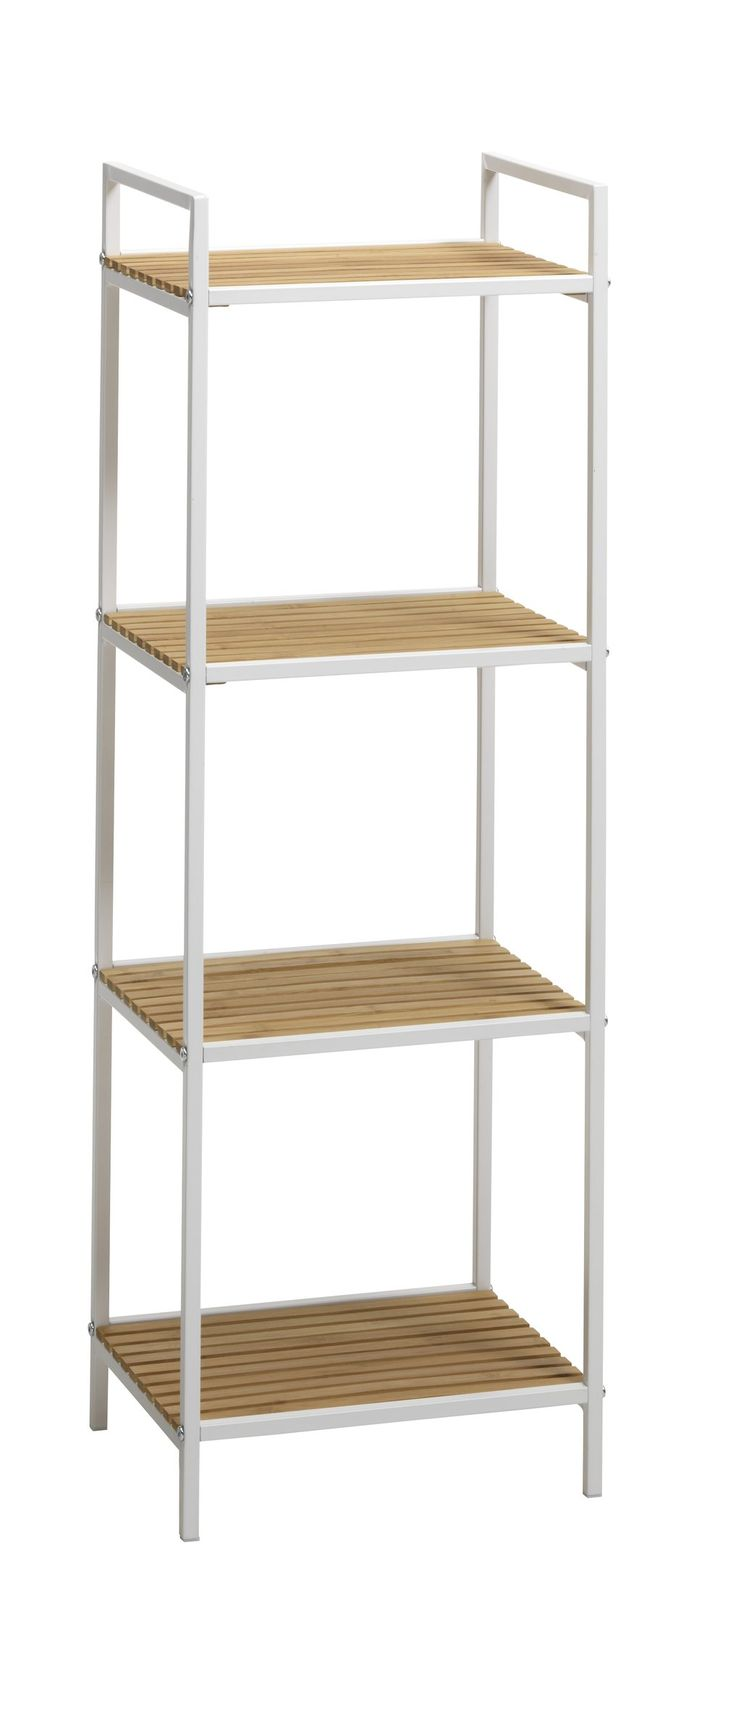 Hervorragend The 25+ best Etagere metall ideas on Pinterest | Regal metall  VK74